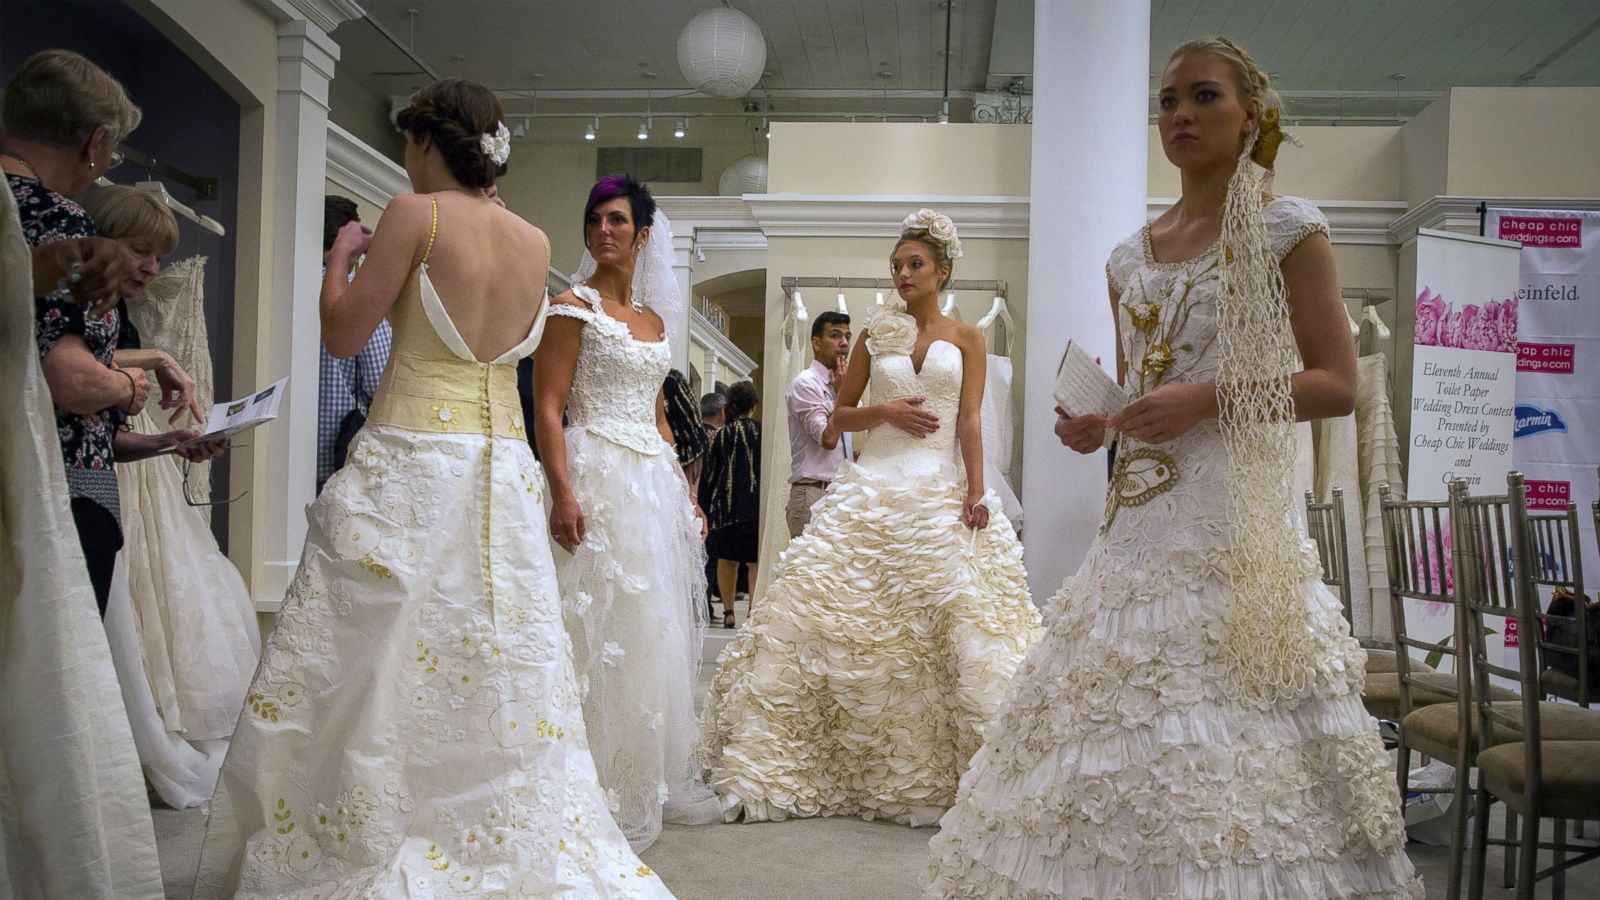 Toilet Paper Wedding Dresses So Stunning You\'d Be Proud to Wear Them ...